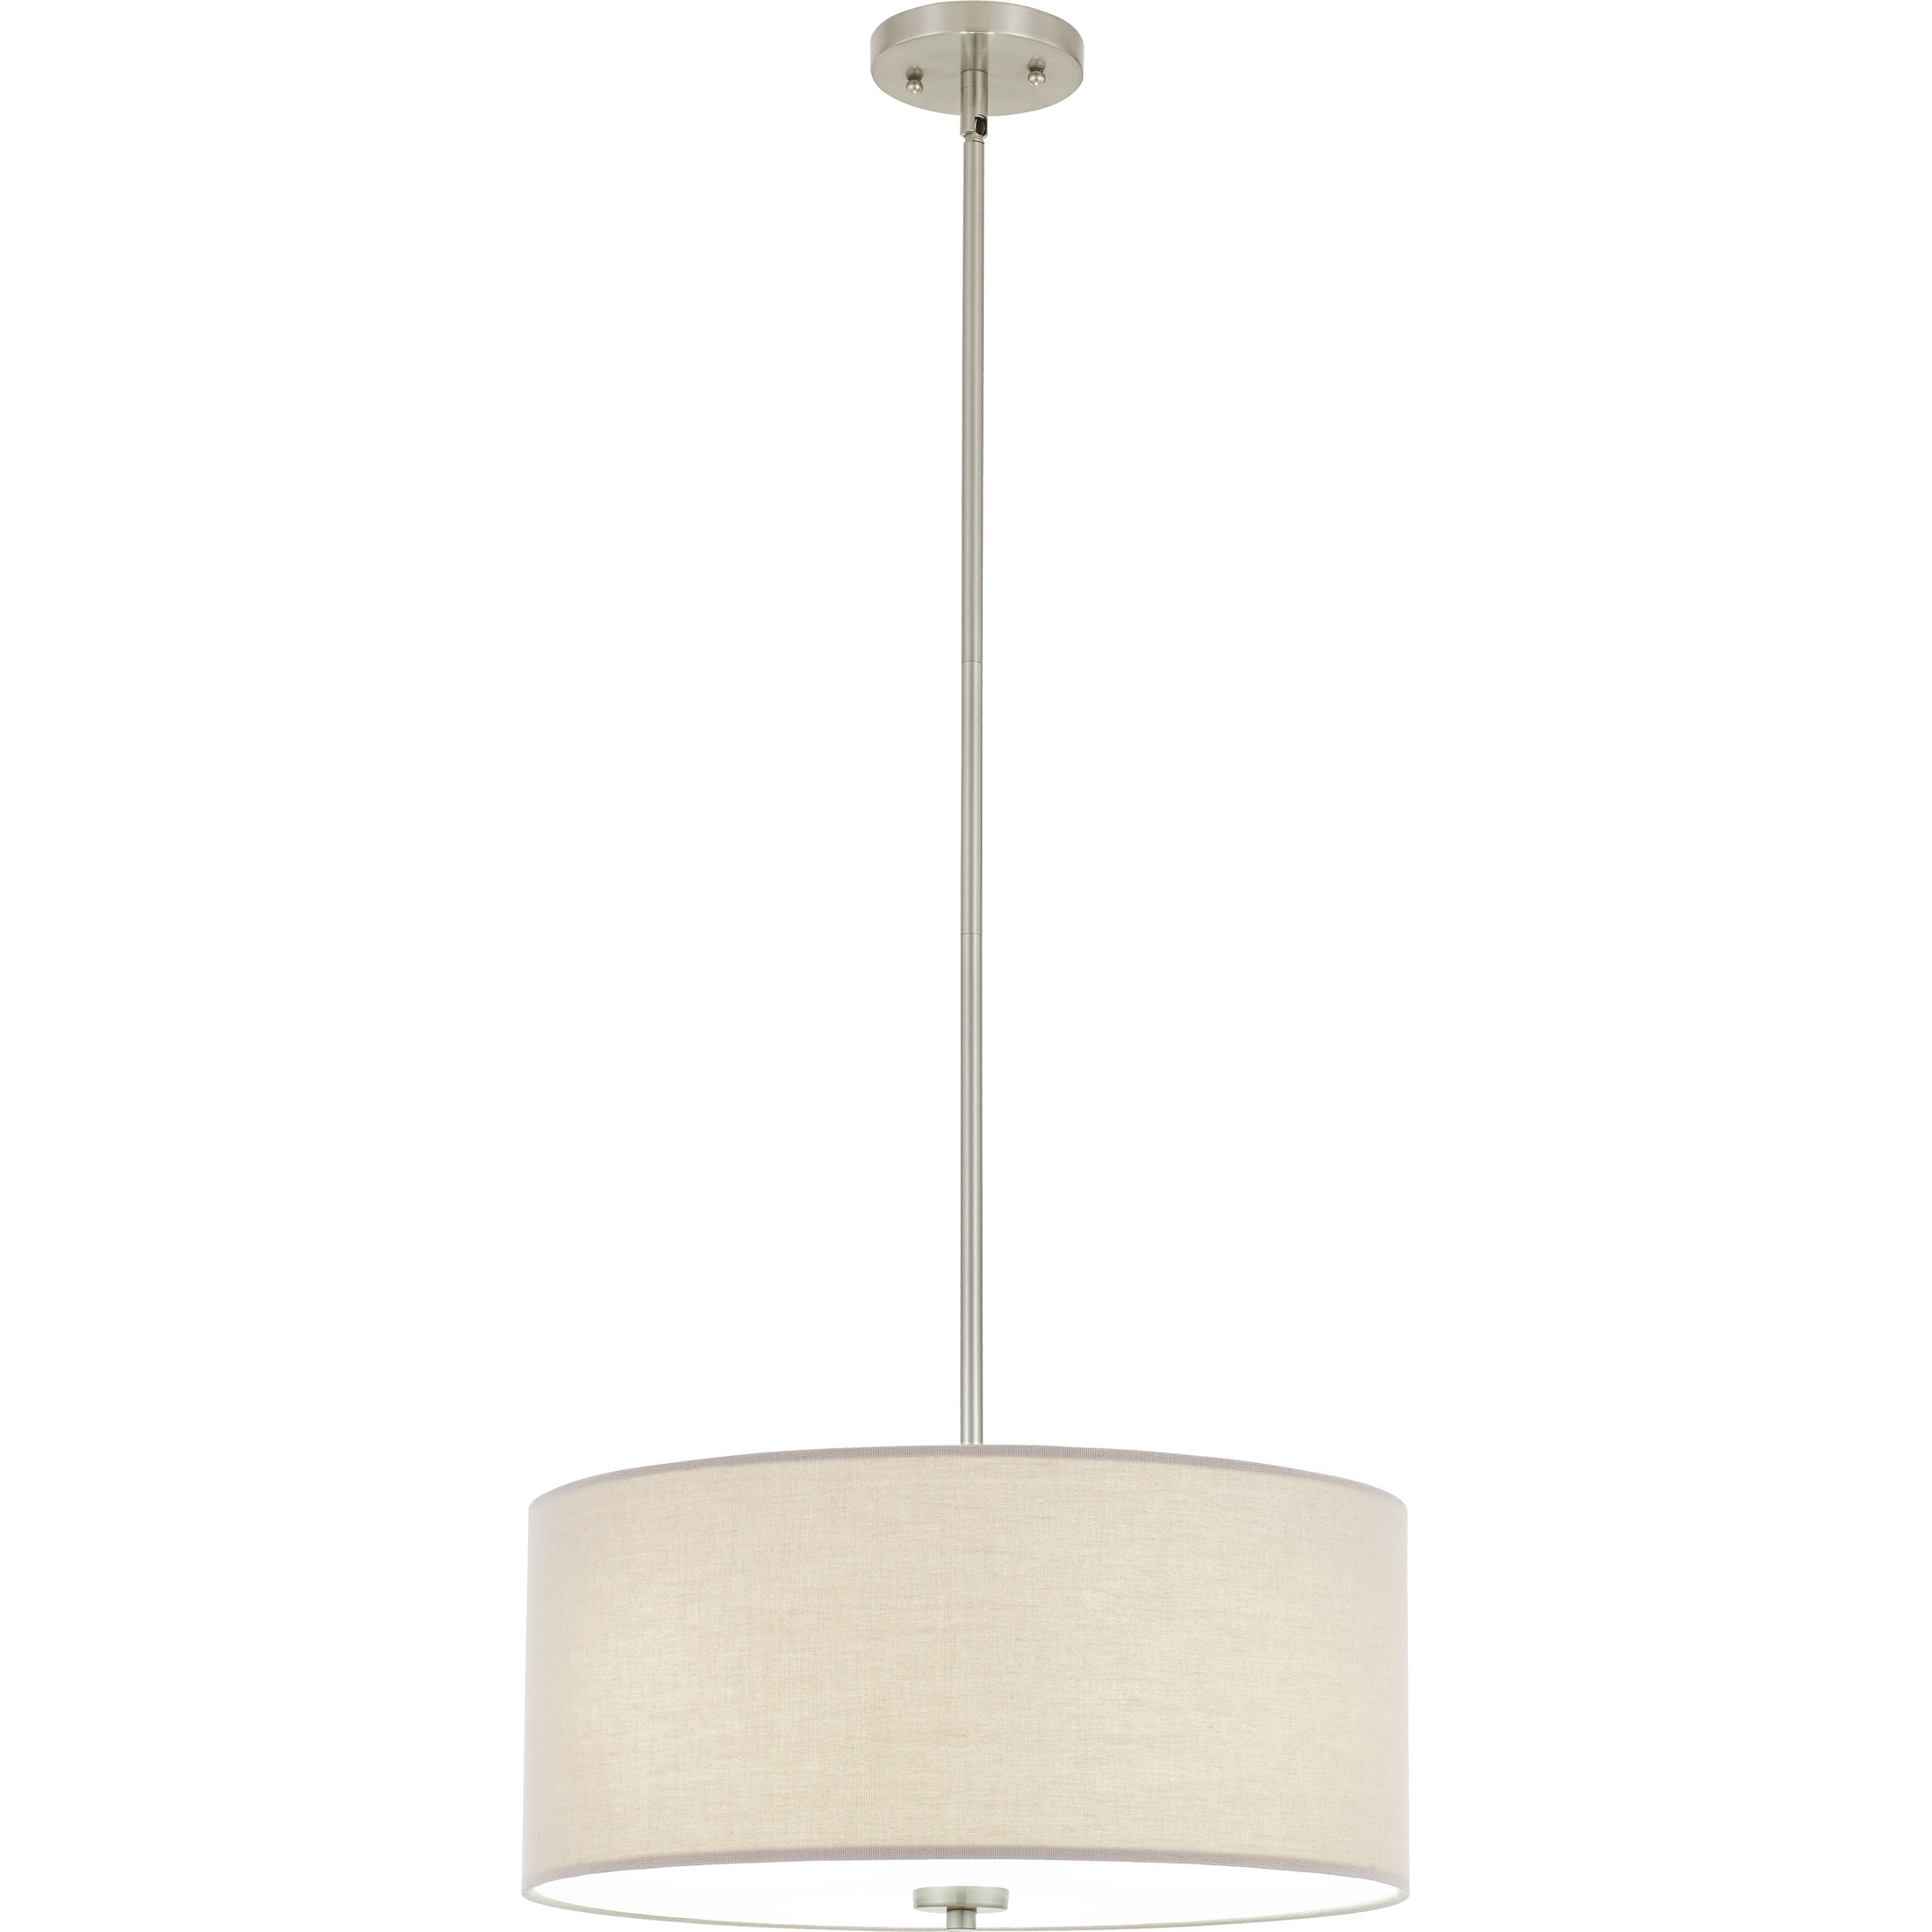 Quoizel Heather 3-light 18-inch Wide Drum Pendant